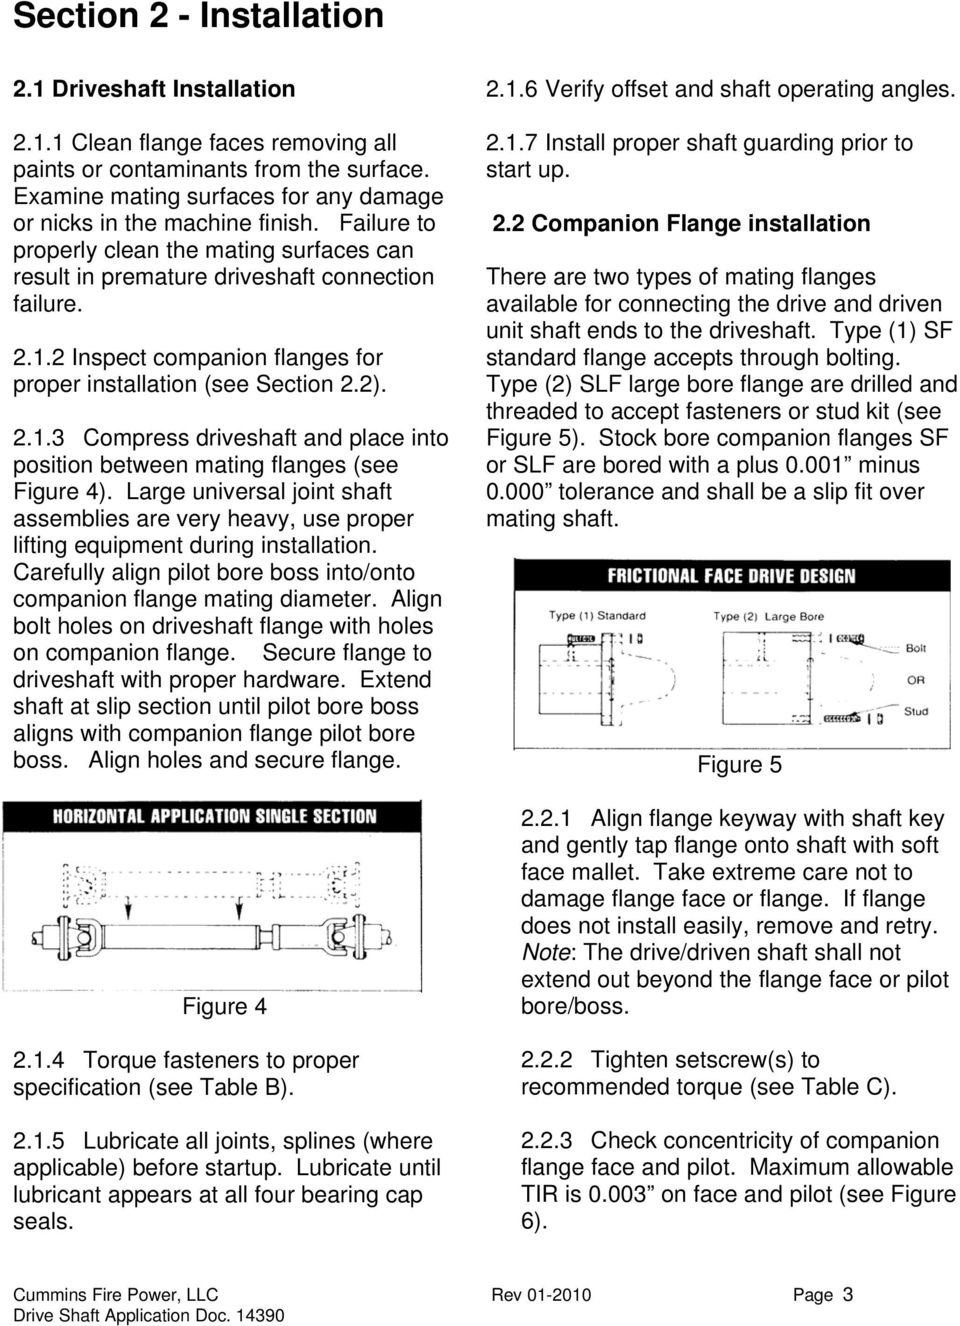 2 Inspect companion flanges for proper installation (see Section 2.2). 2.1.3 Compress driveshaft and place into position between mating flanges (see Figure 4).